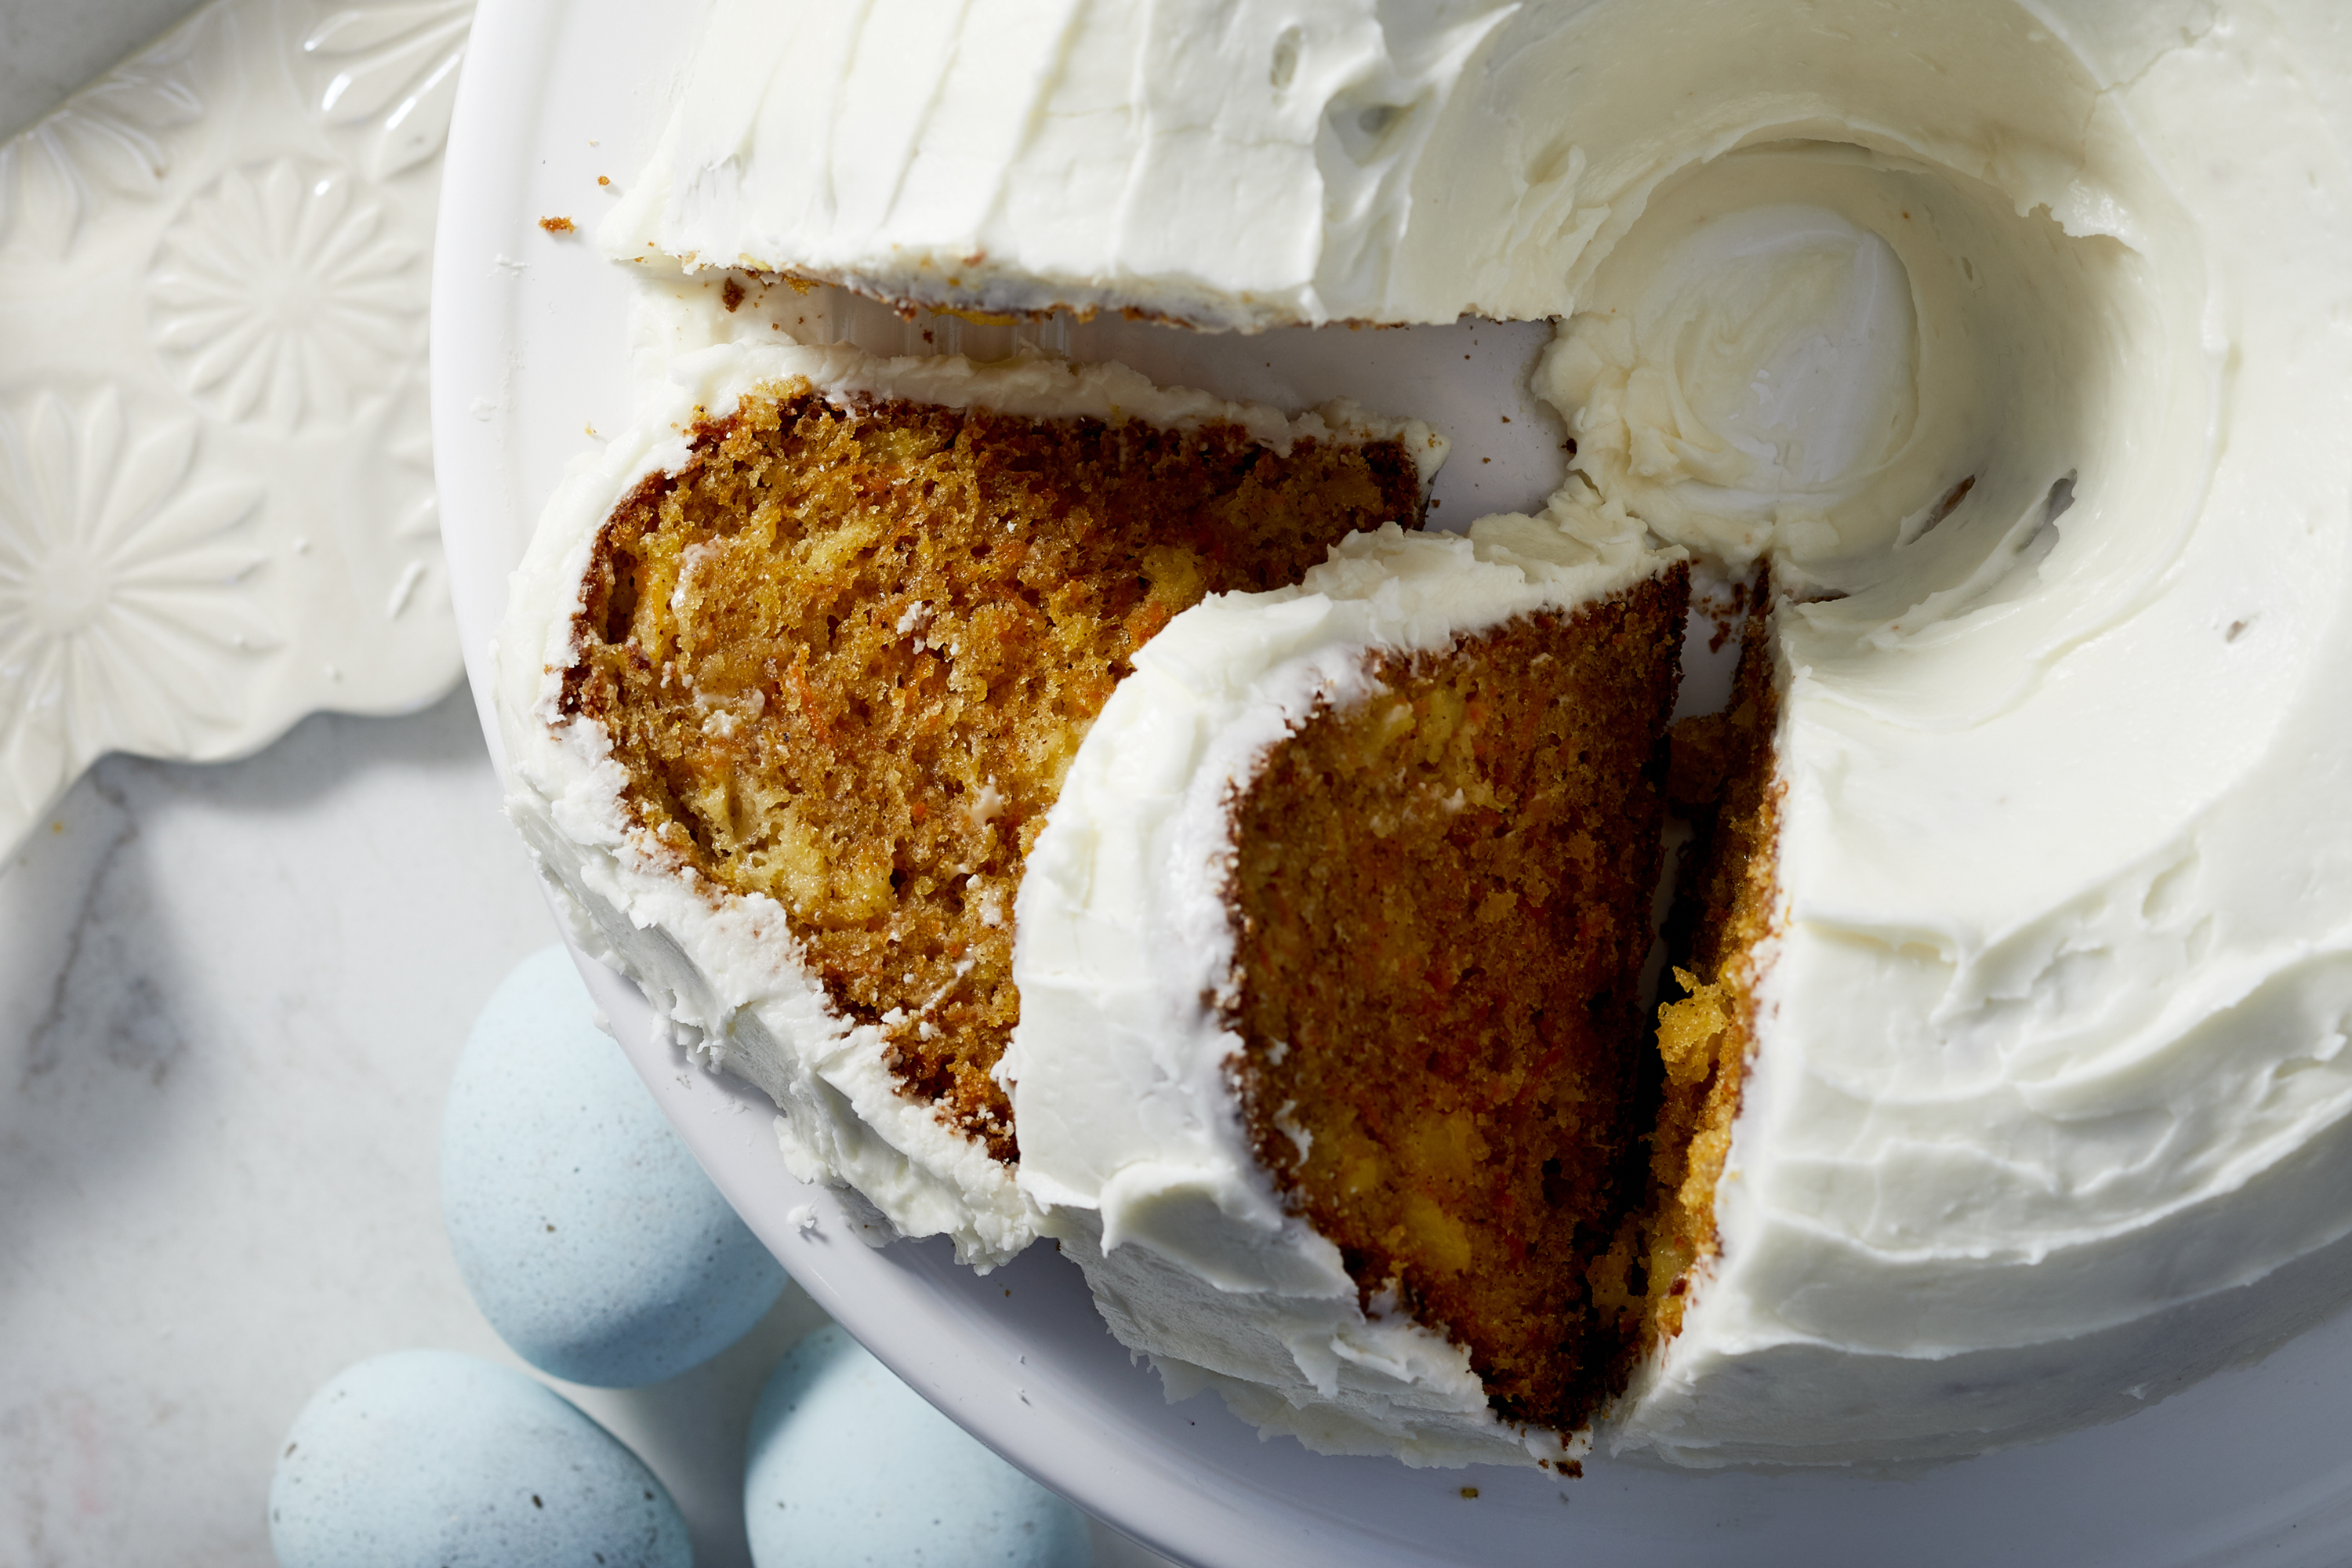 Easy Carrot Cake with Cream Cheese Frosting Image 1